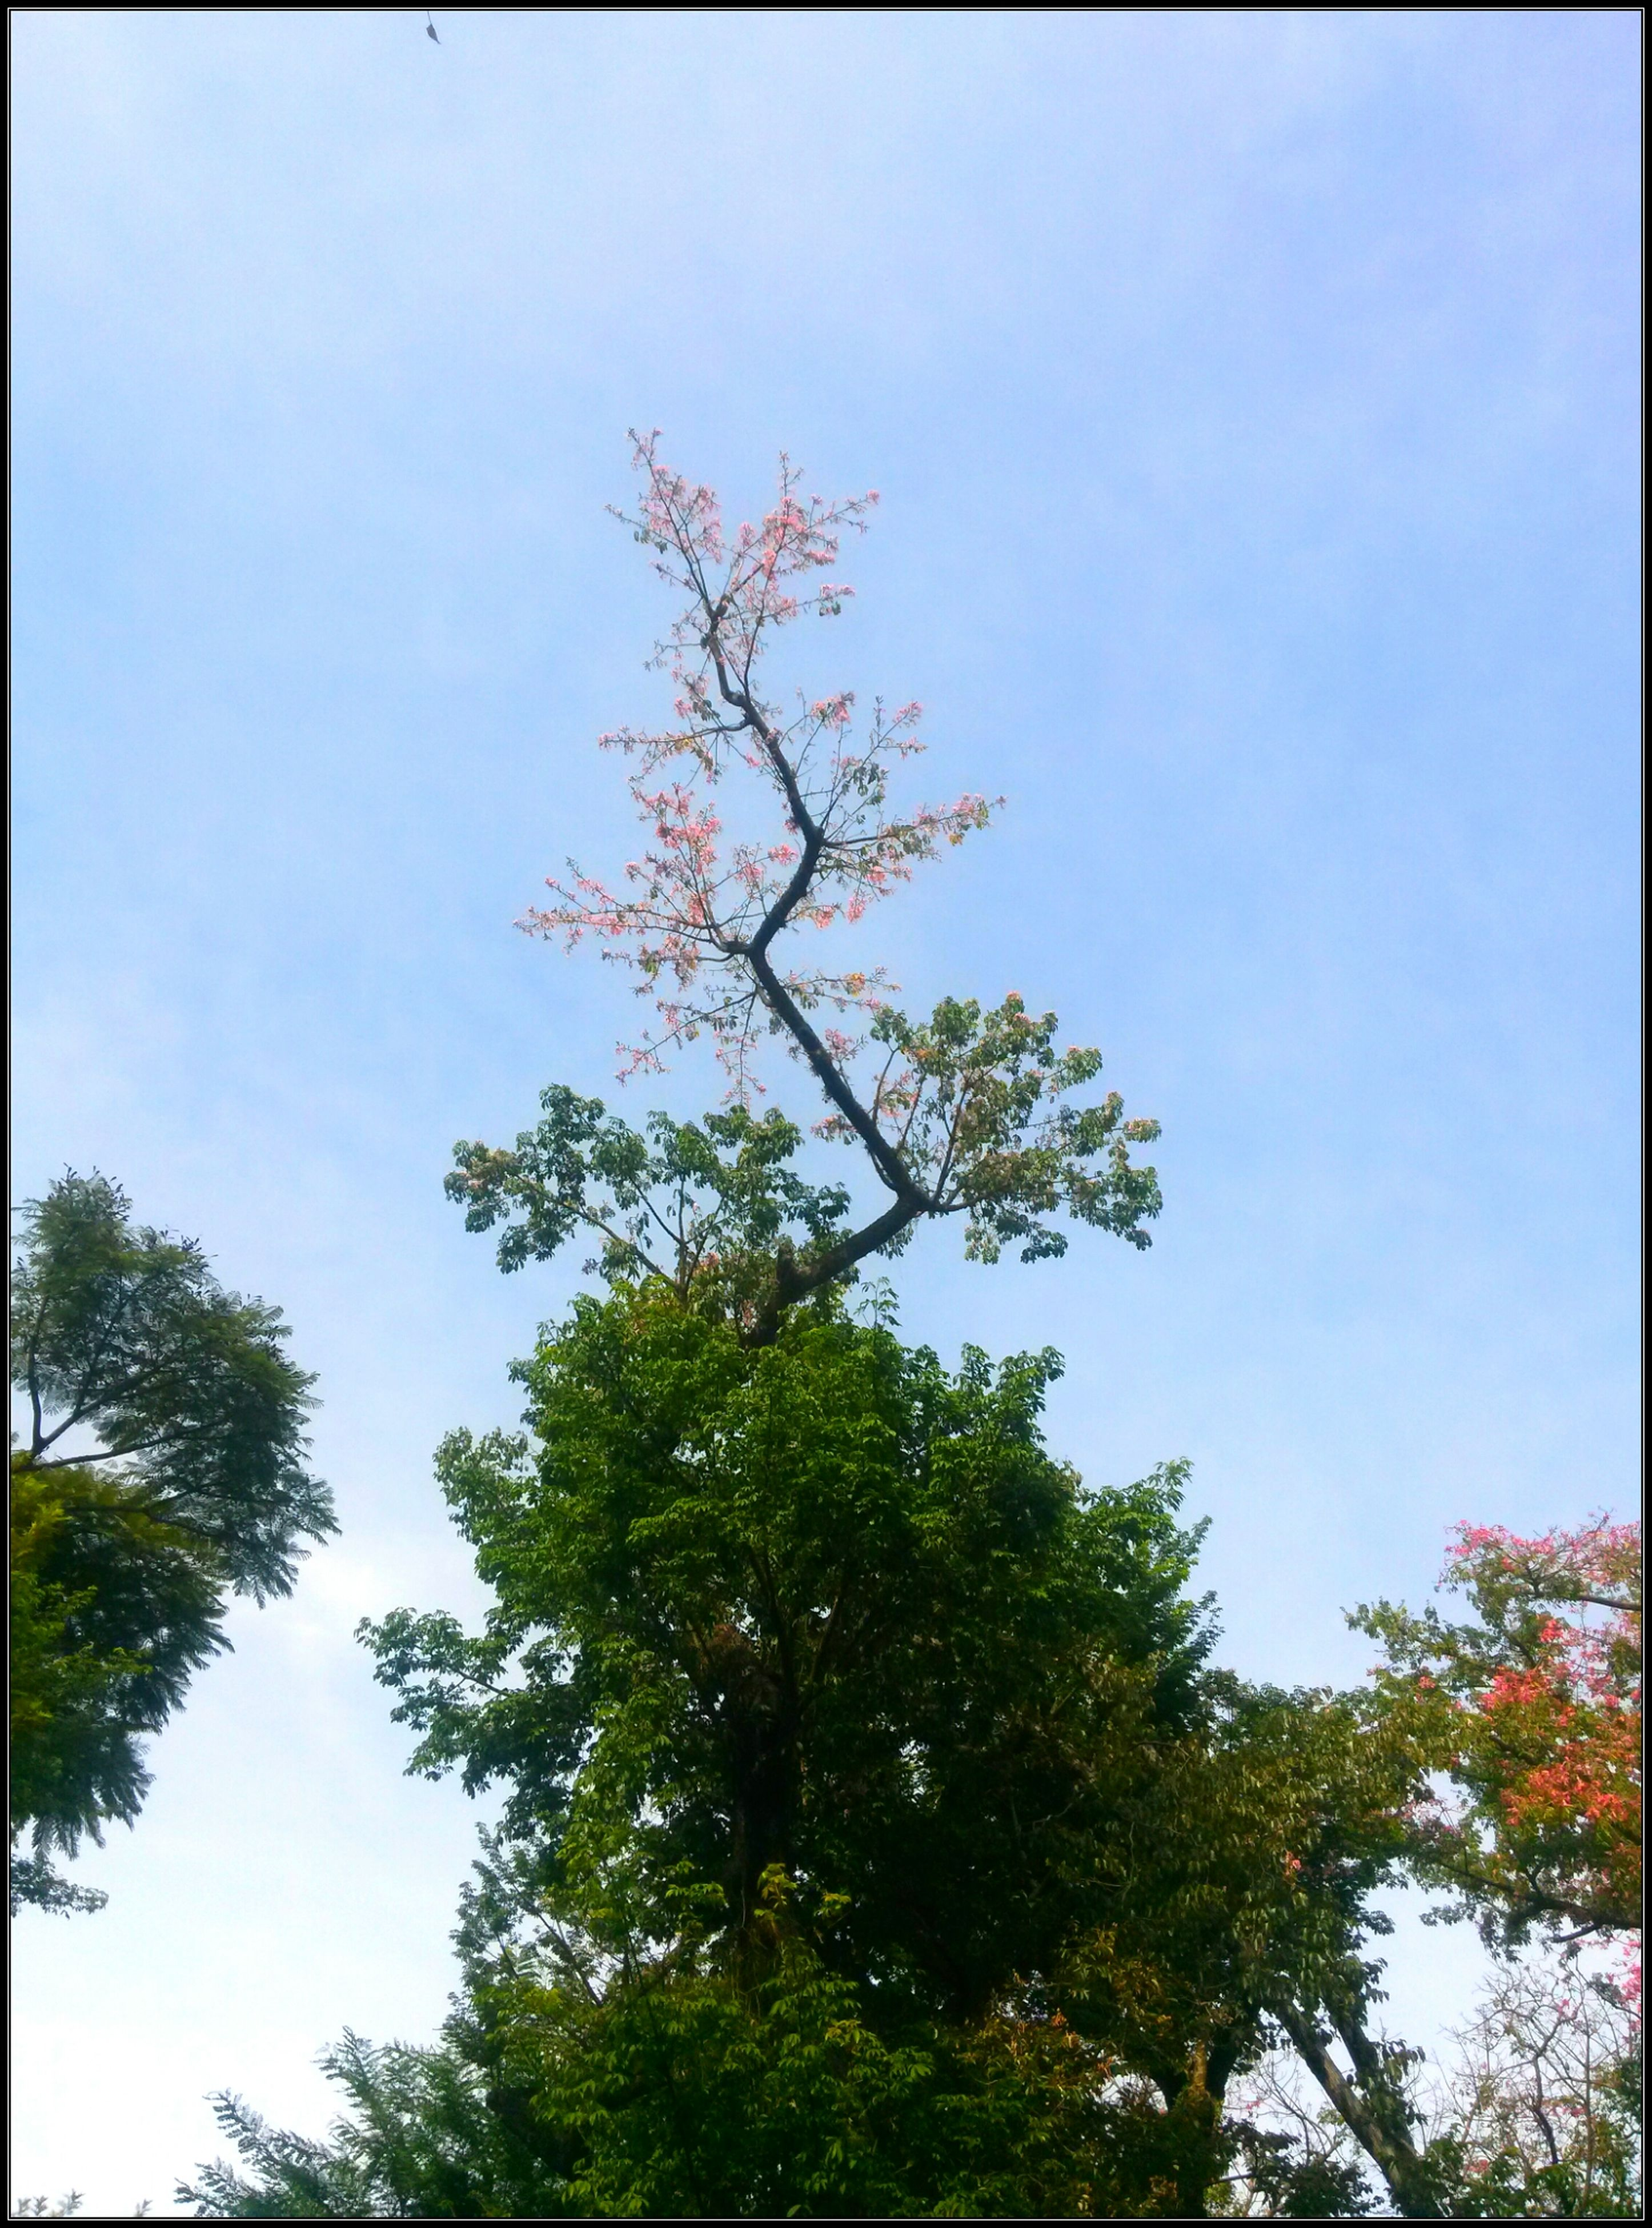 tree, growth, low angle view, nature, branch, day, beauty in nature, sky, no people, outdoors, tranquility, flower, fragility, freshness, close-up